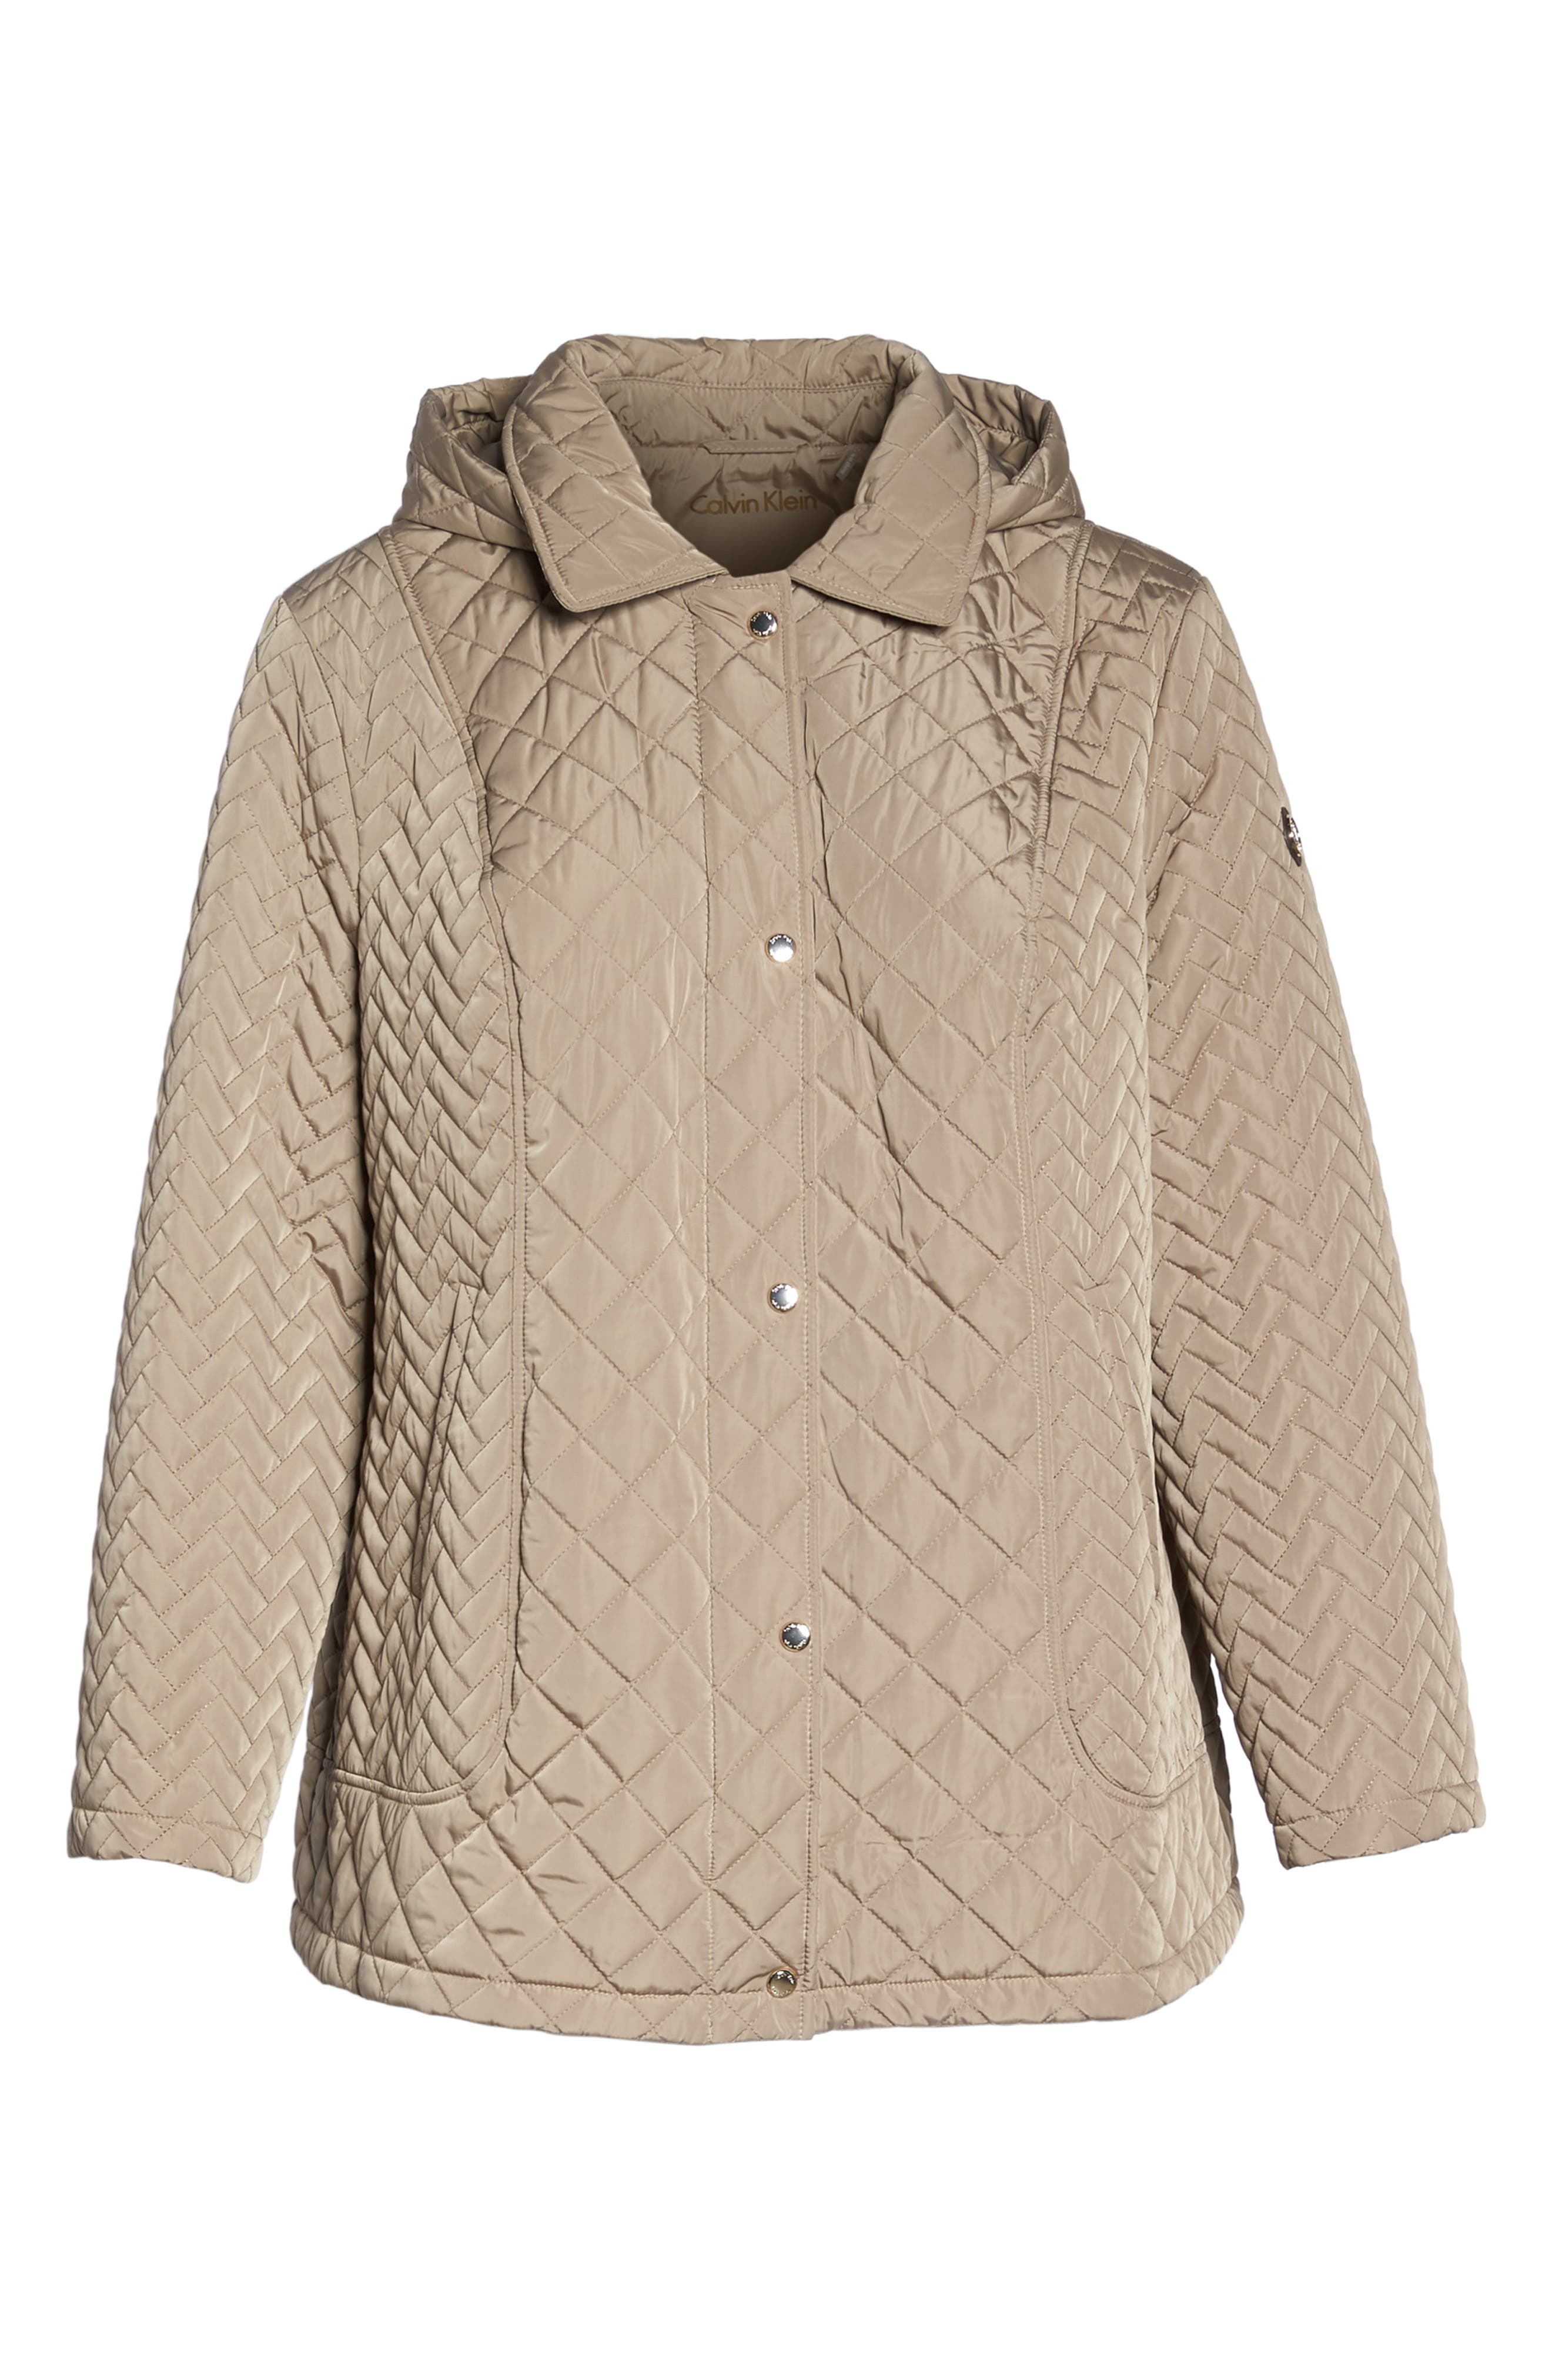 Water Resistant Diamond Quilted Jacket,                             Alternate thumbnail 5, color,                             021